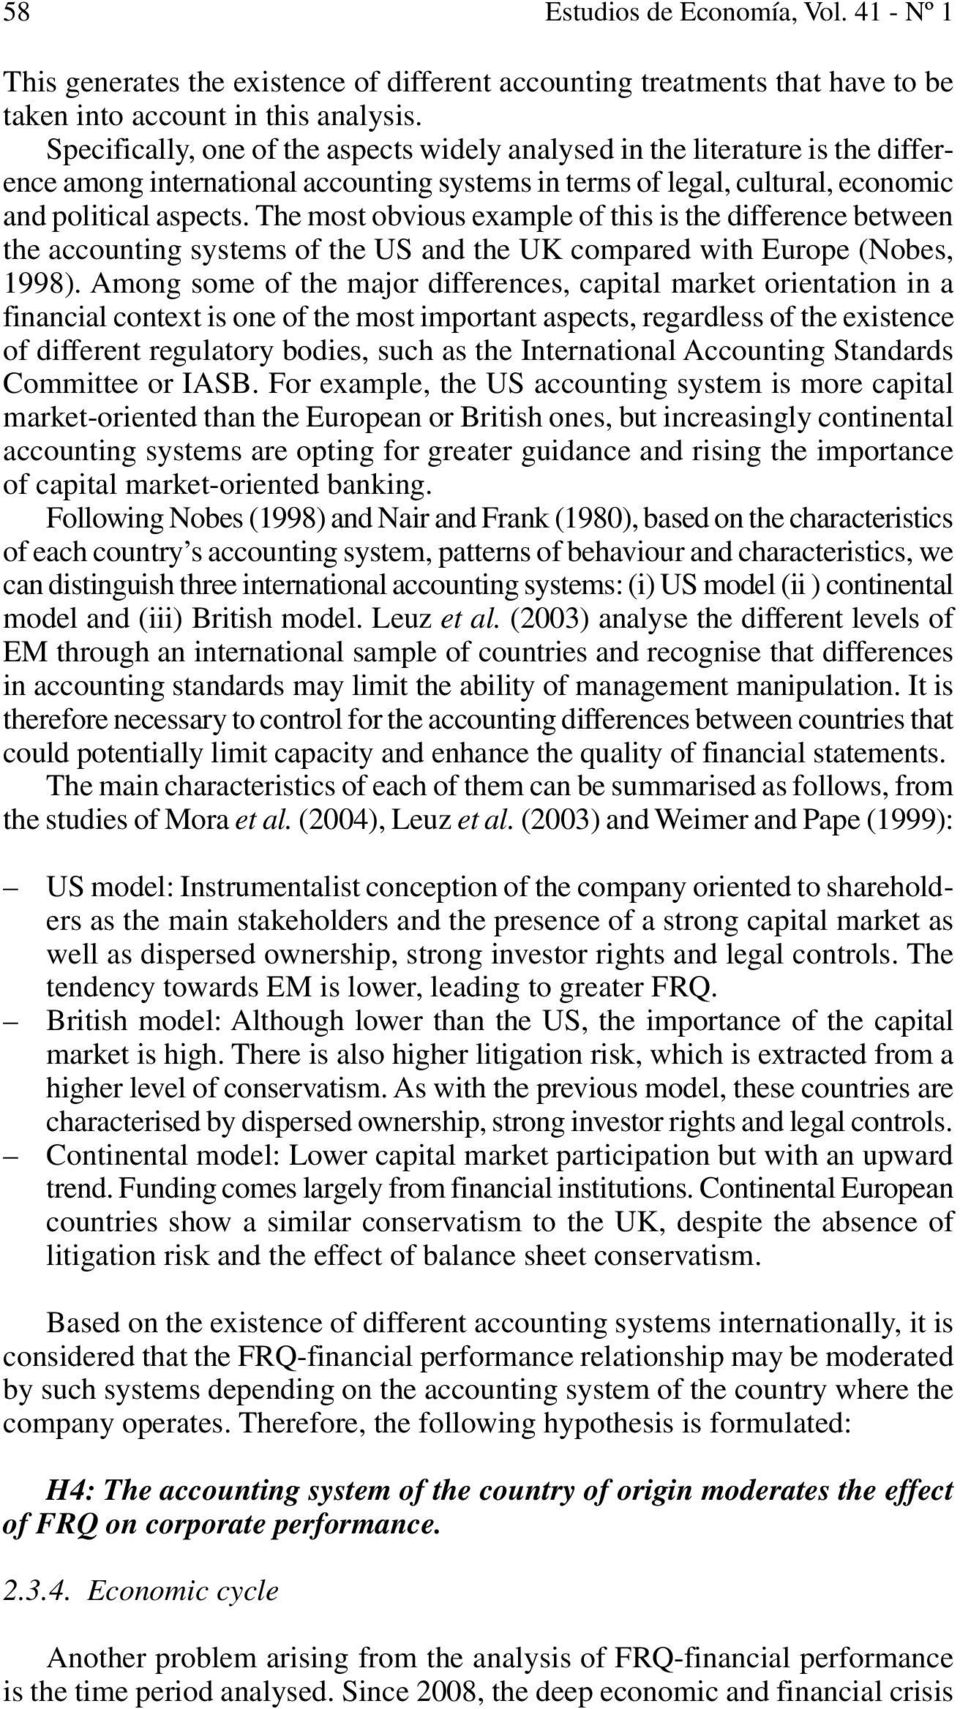 The most obvious example of this is the difference between the accounting systems of the US and the UK compared with Europe (Nobes, 1998).